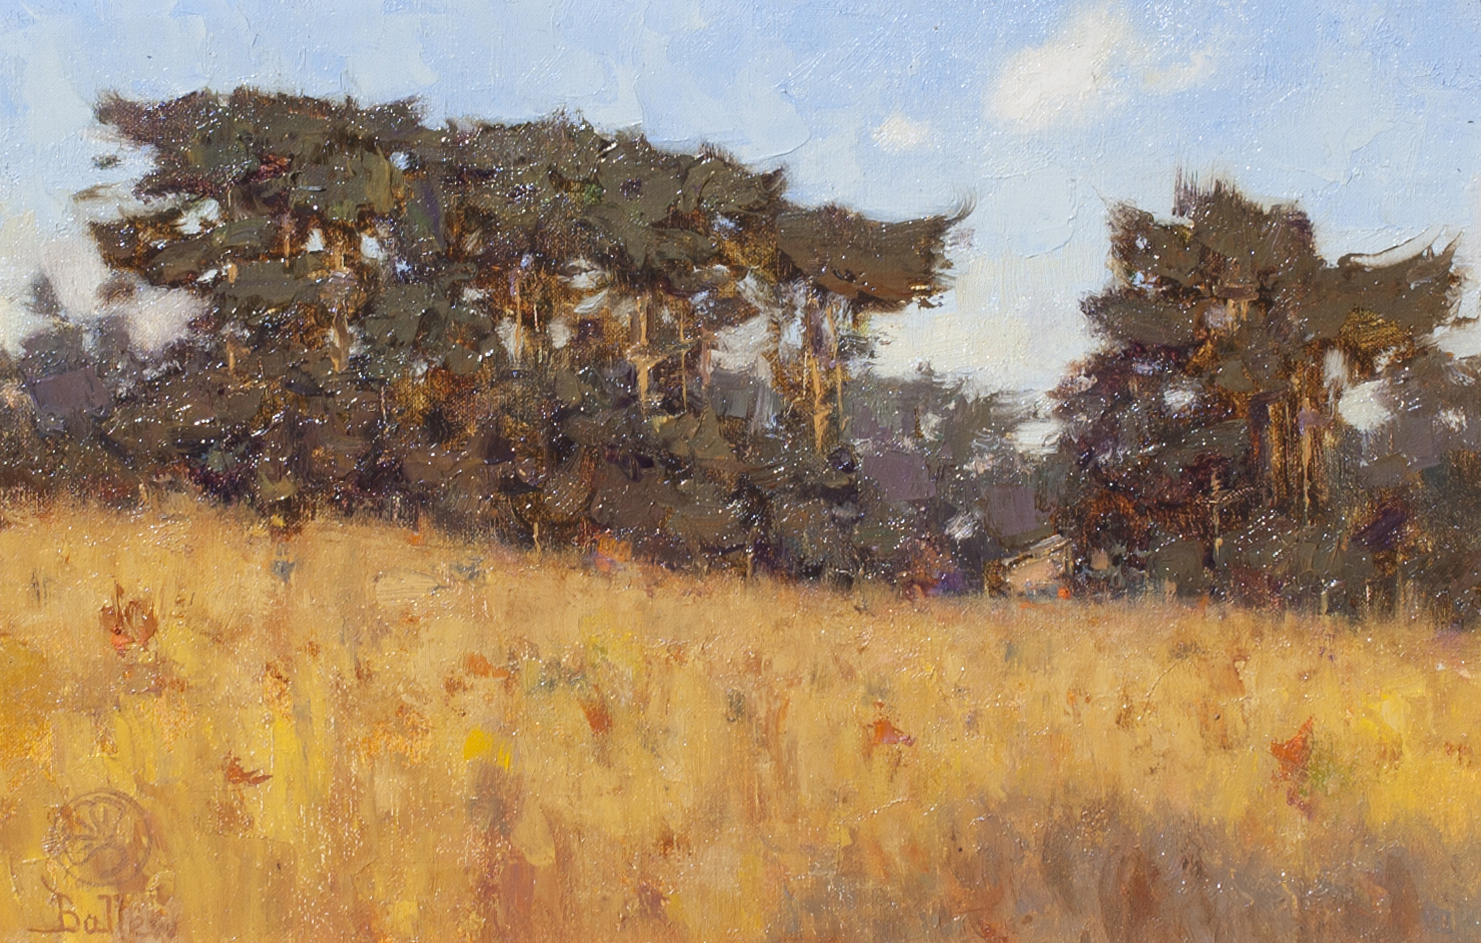 landscape painting by David Ballew